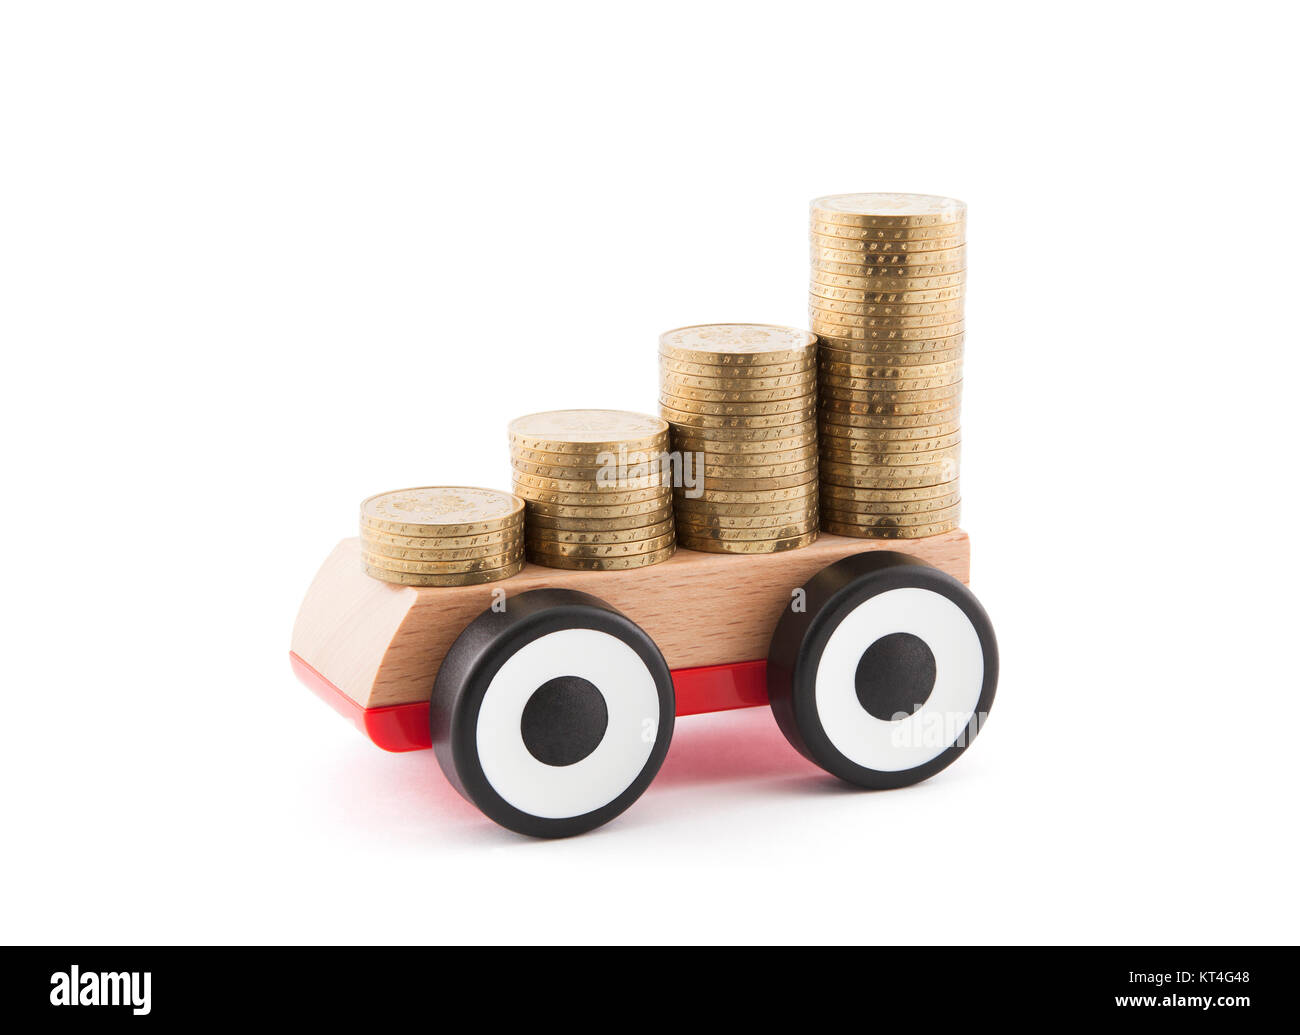 Saving money for a car. Clipping path included. - Stock Image